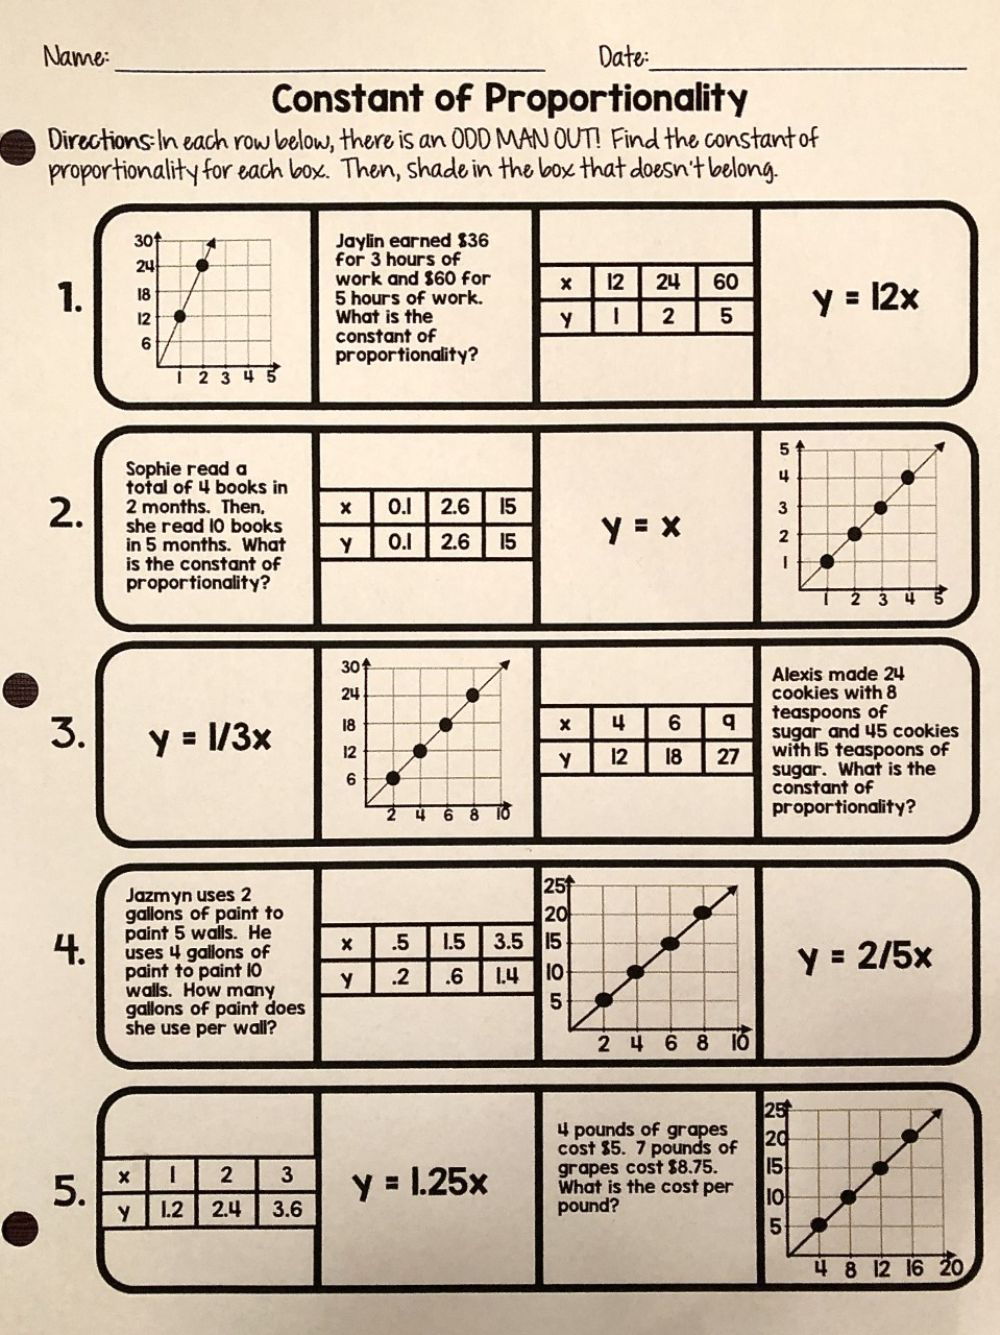 hight resolution of Constant of Proportionality - Odd Man Out worksheet